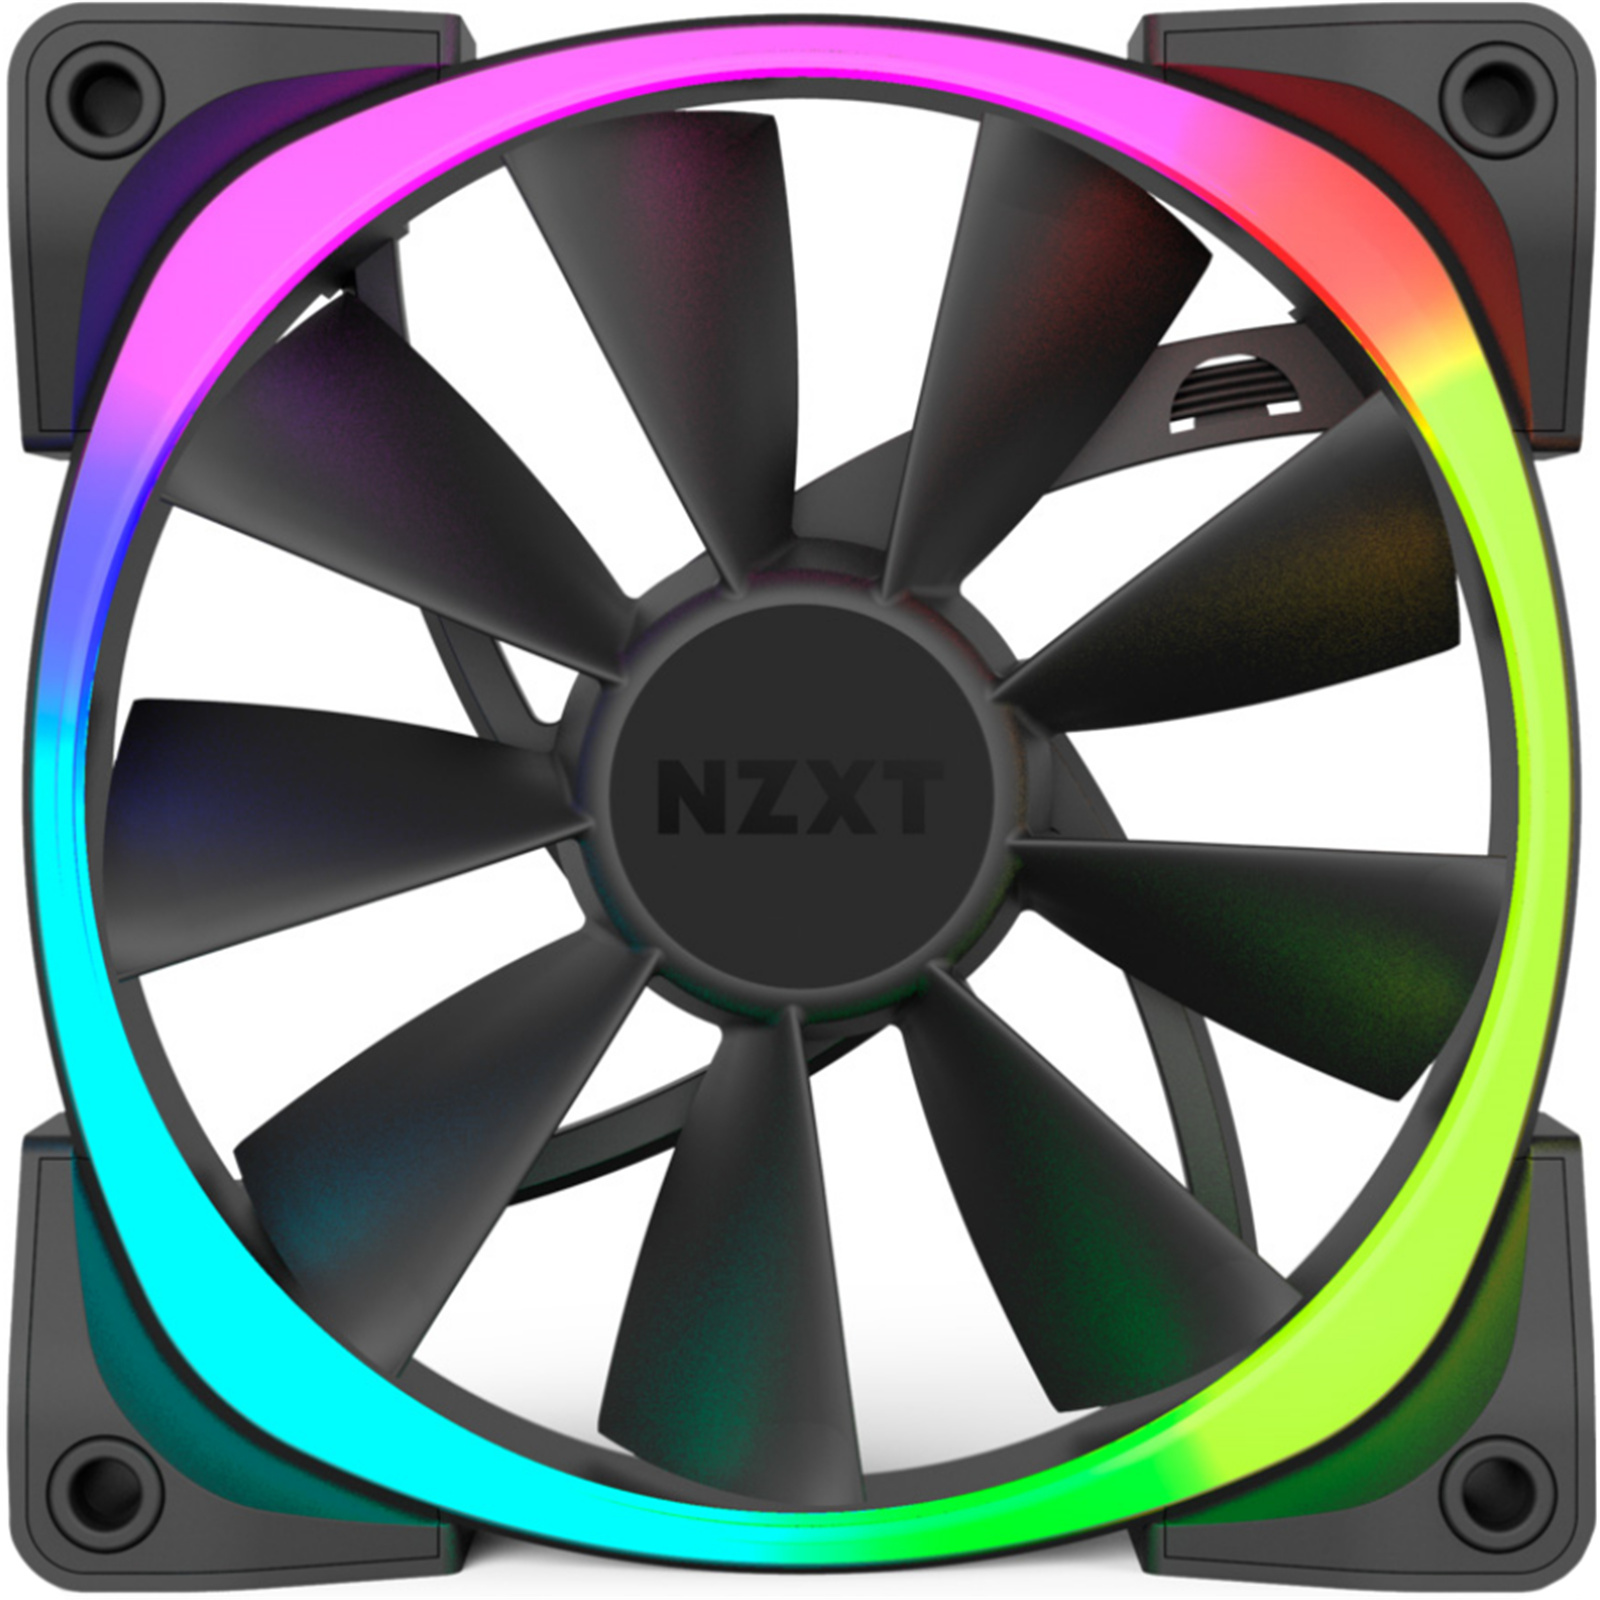 Buy the NZXT Aer 140 RGB 2 140mm Single Case Fan  RGB, PWM,Requires